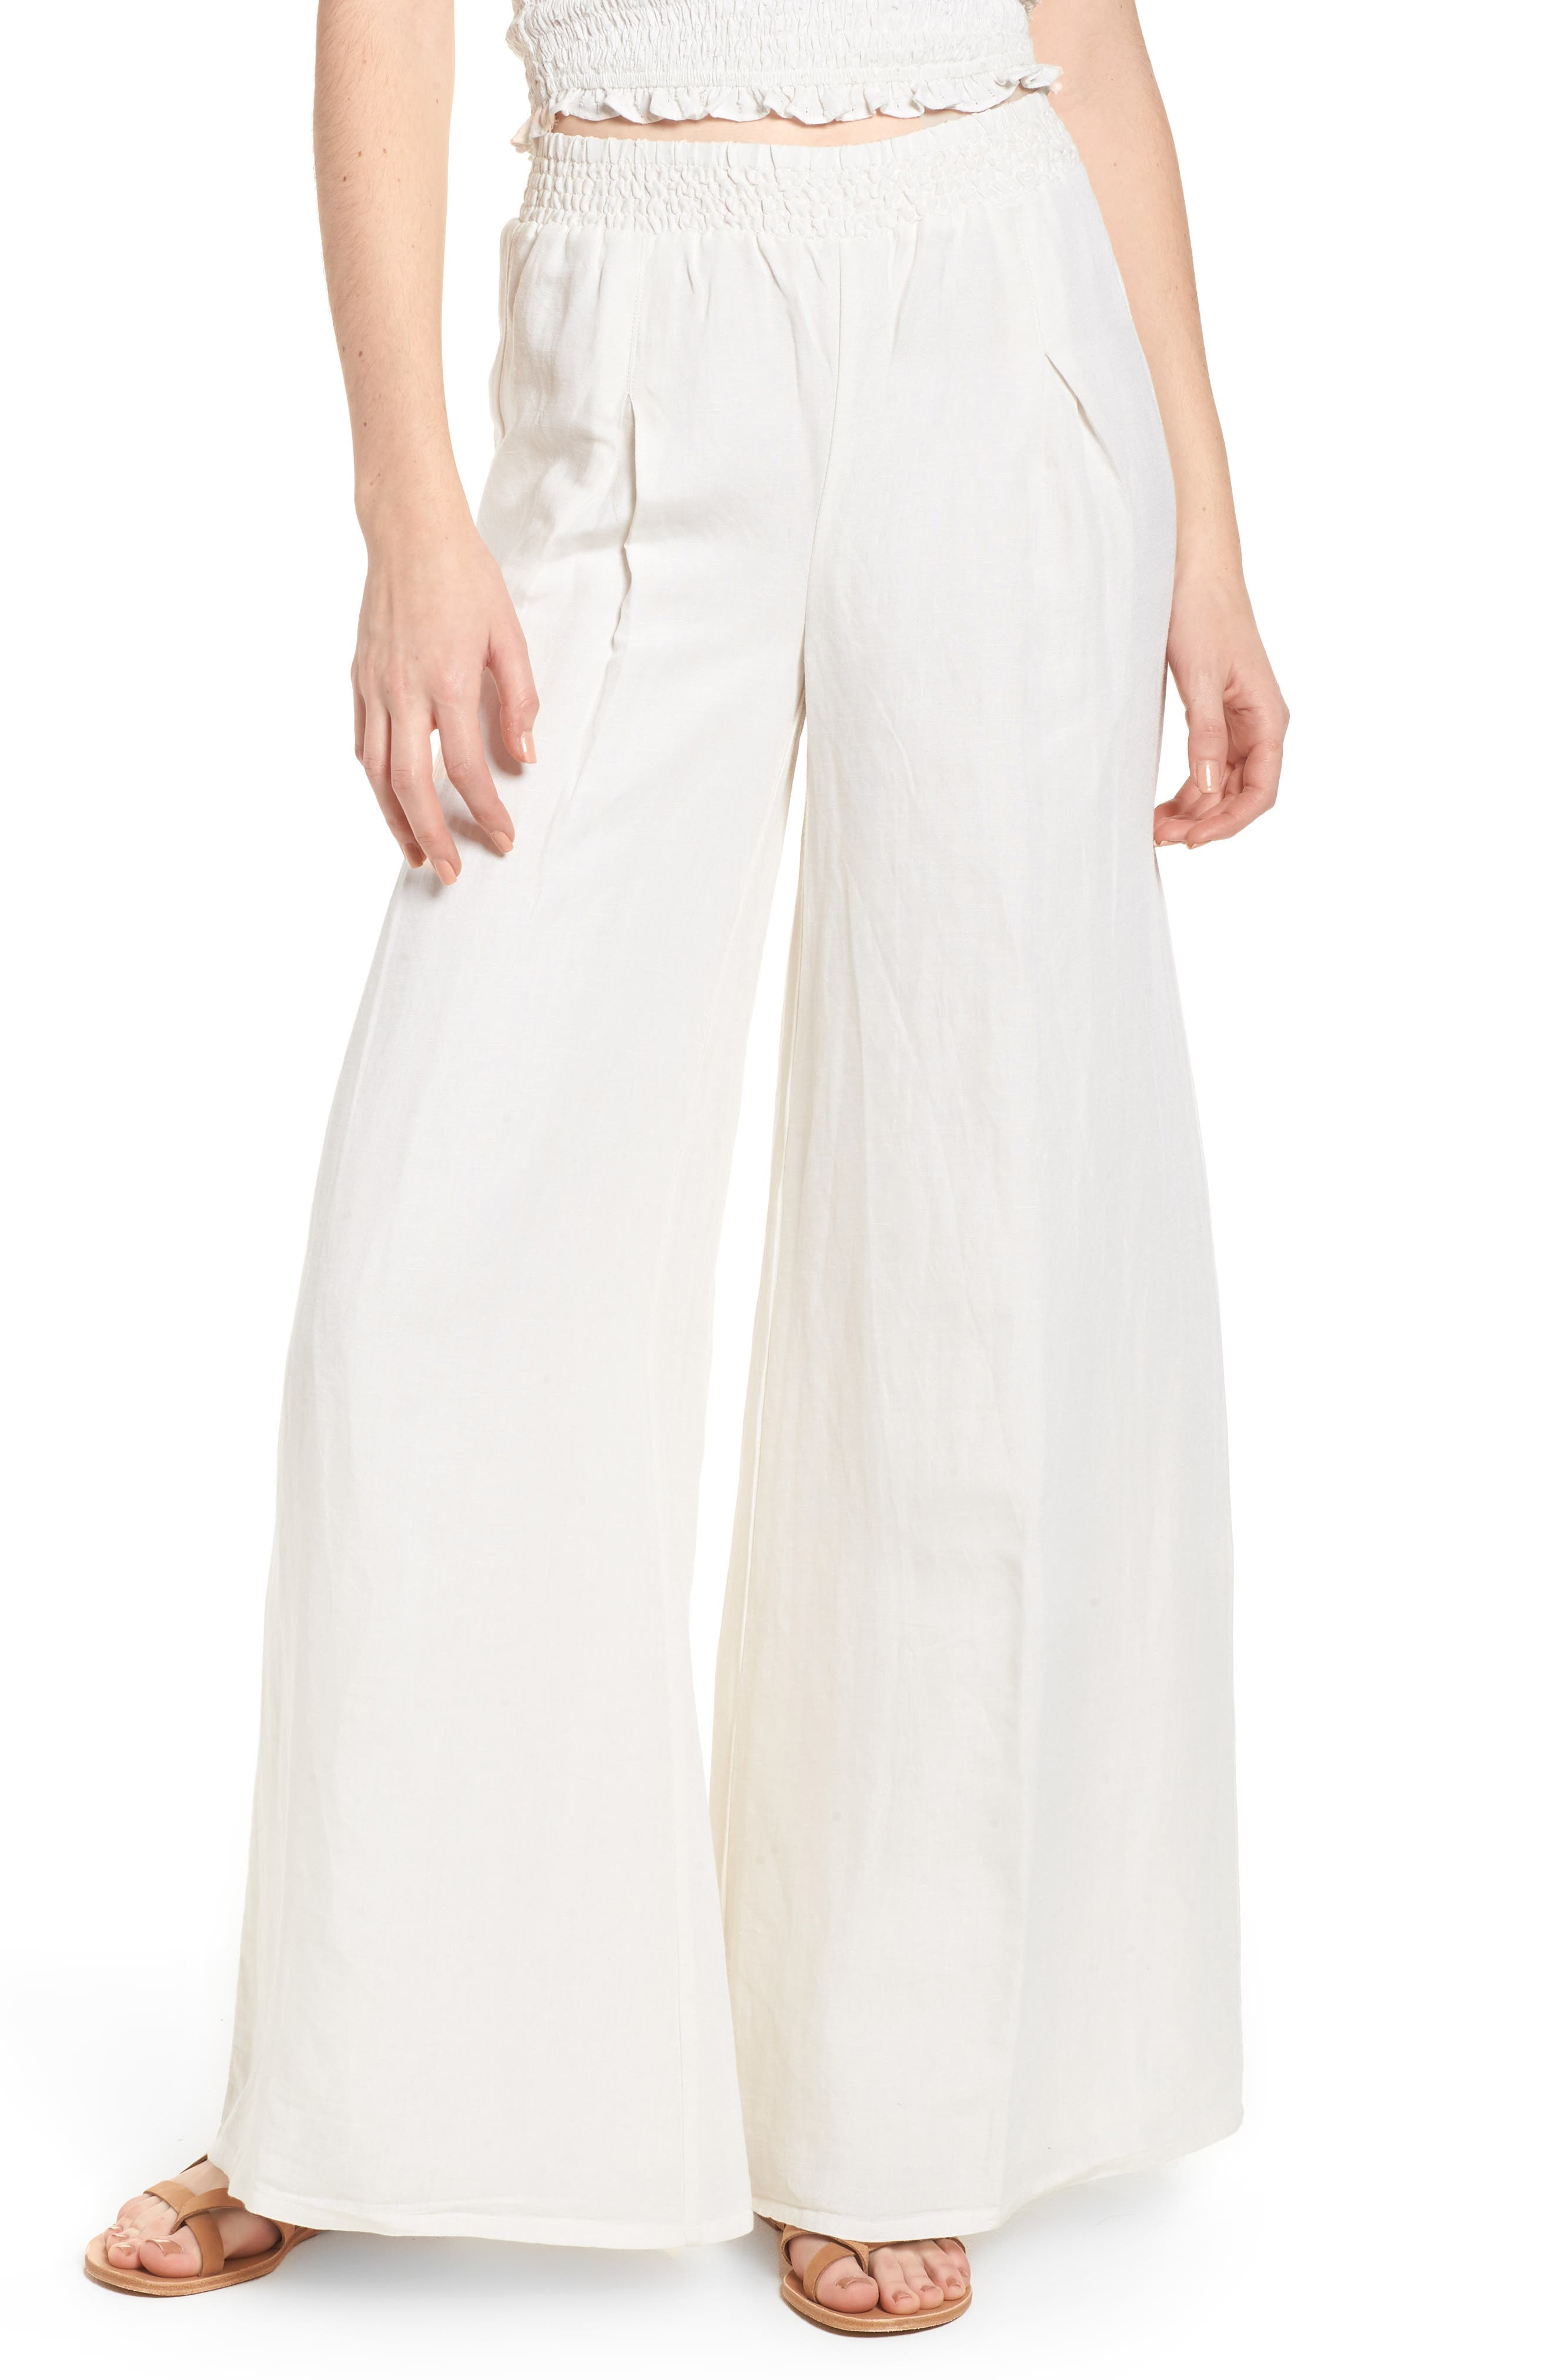 High Roads Smocked Wide Leg Pants,                         Main,                         color, Cool Whip